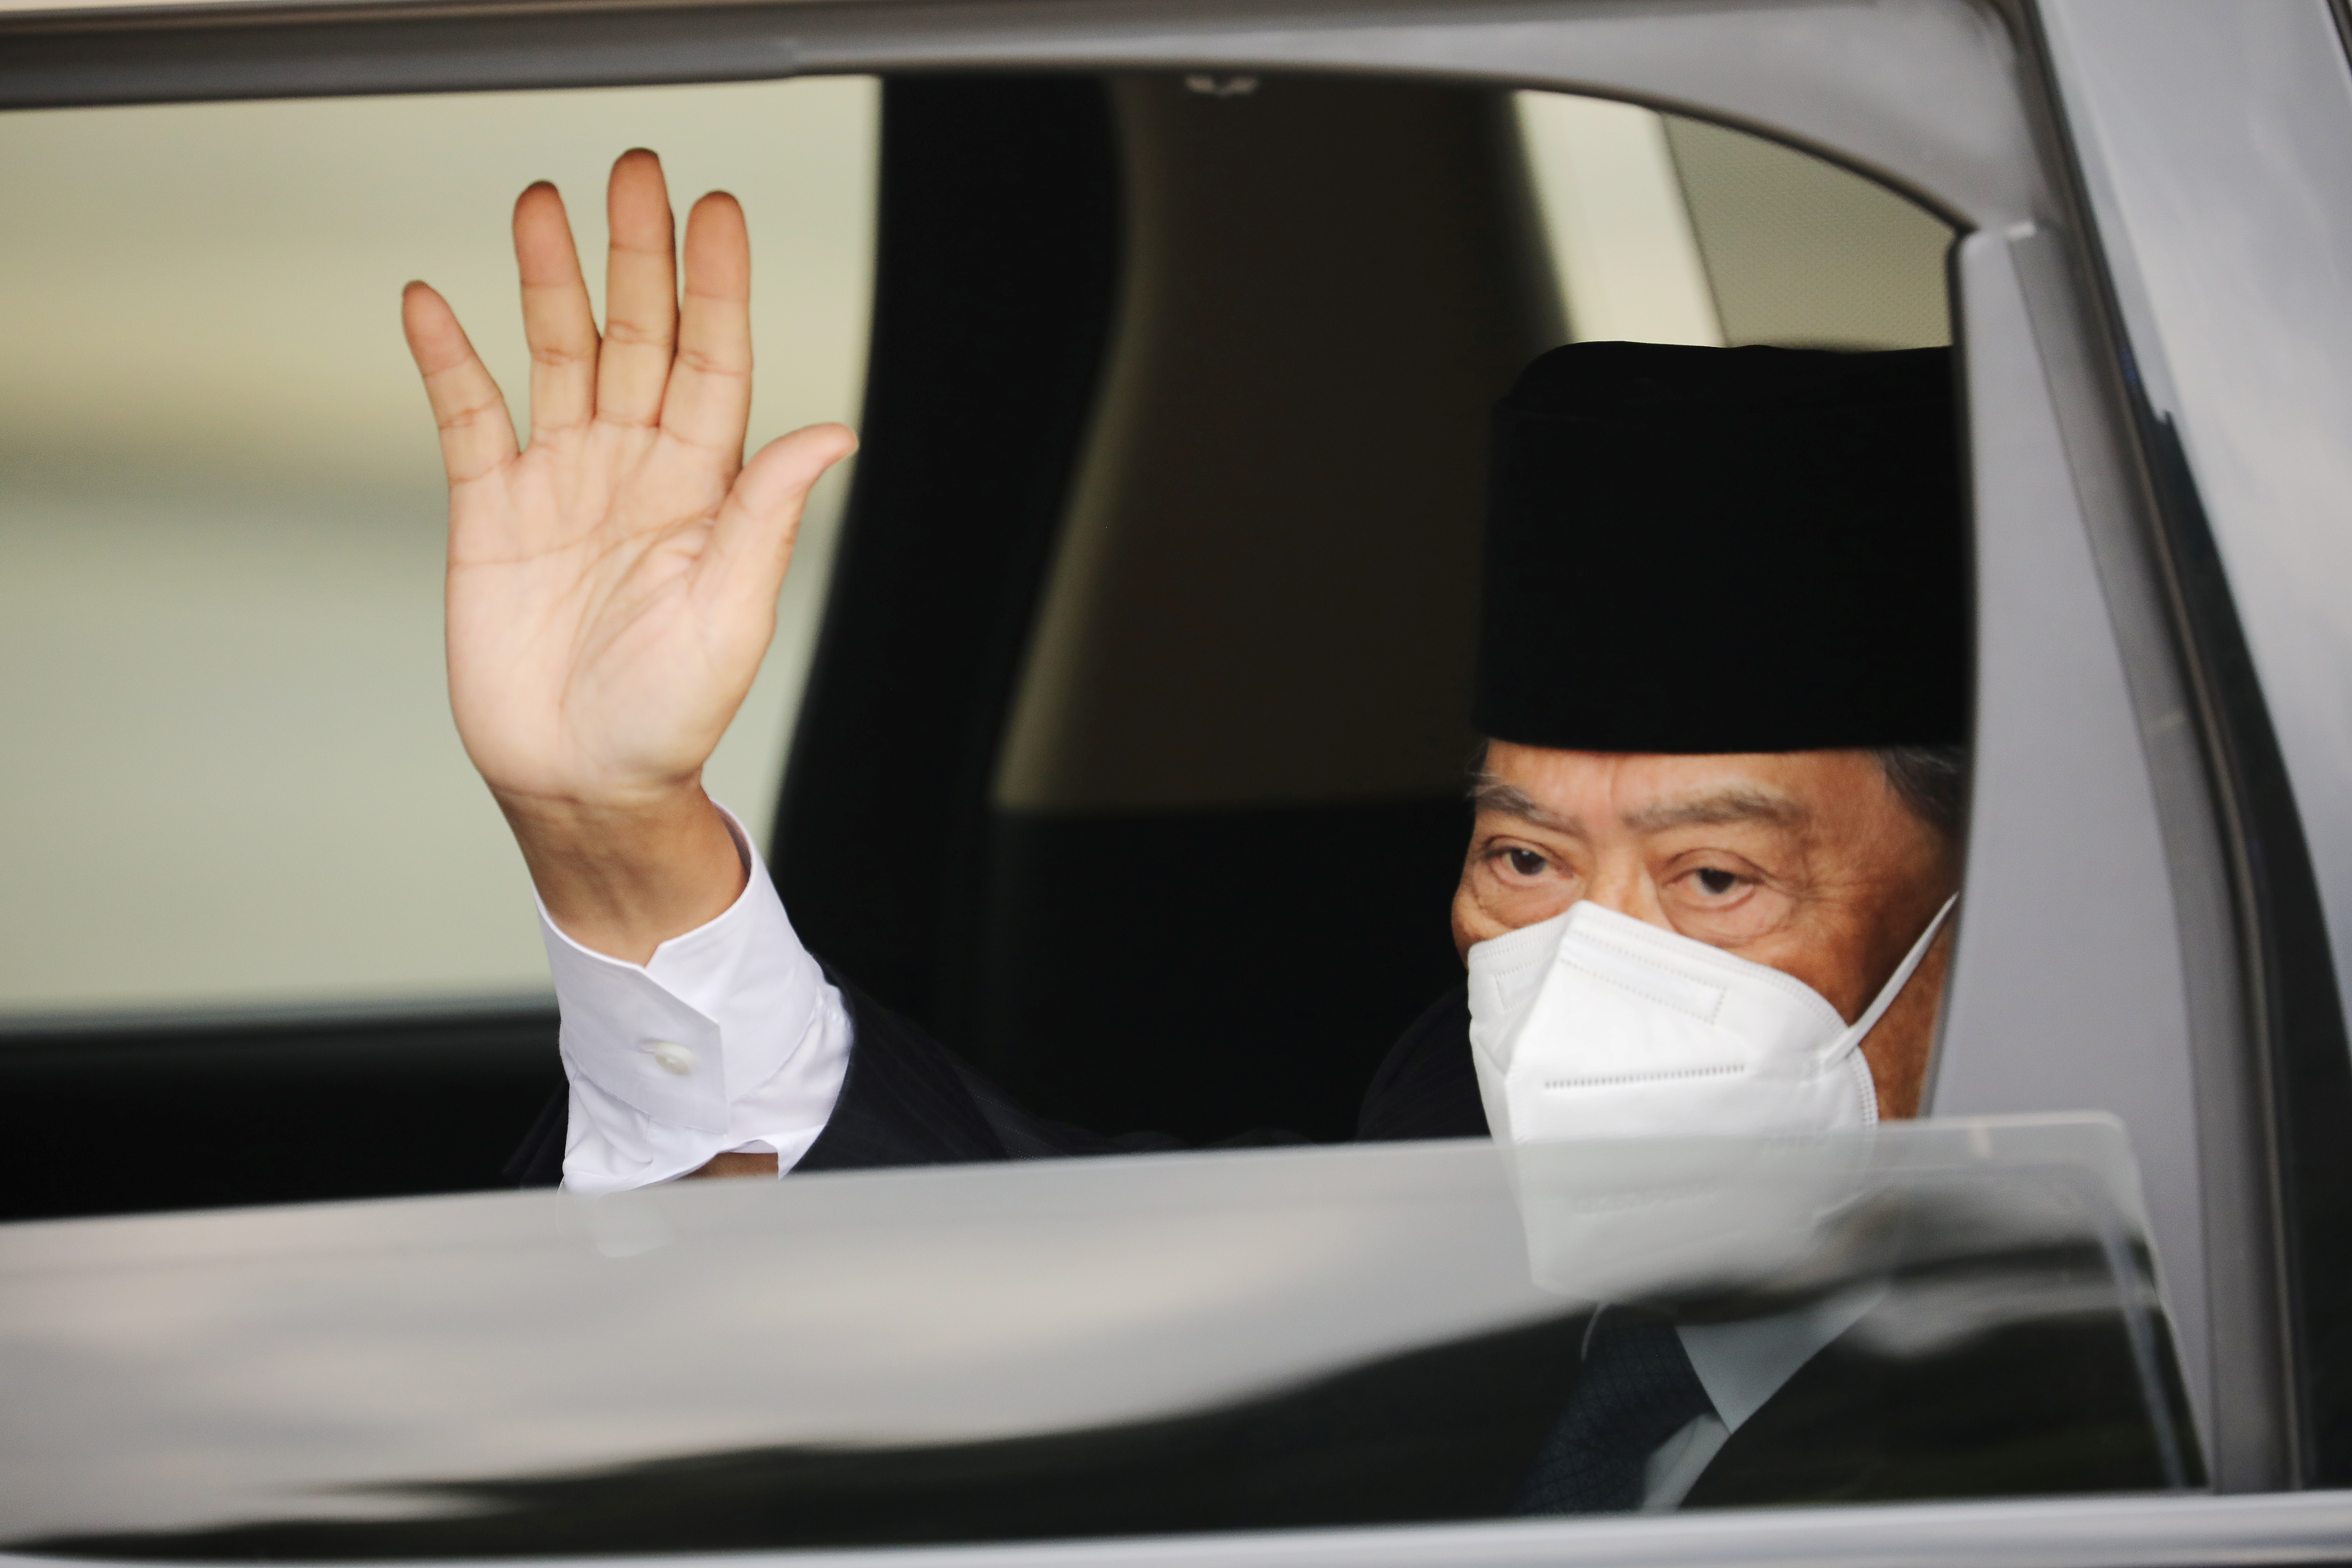 Malaysian Prime Minister Muhyiddin Yassin arrives at the National Palace for a meeting with the king, in Kuala Lumpur, Malaysia August 16, 2021. REUTERS/Lim Huey Teng